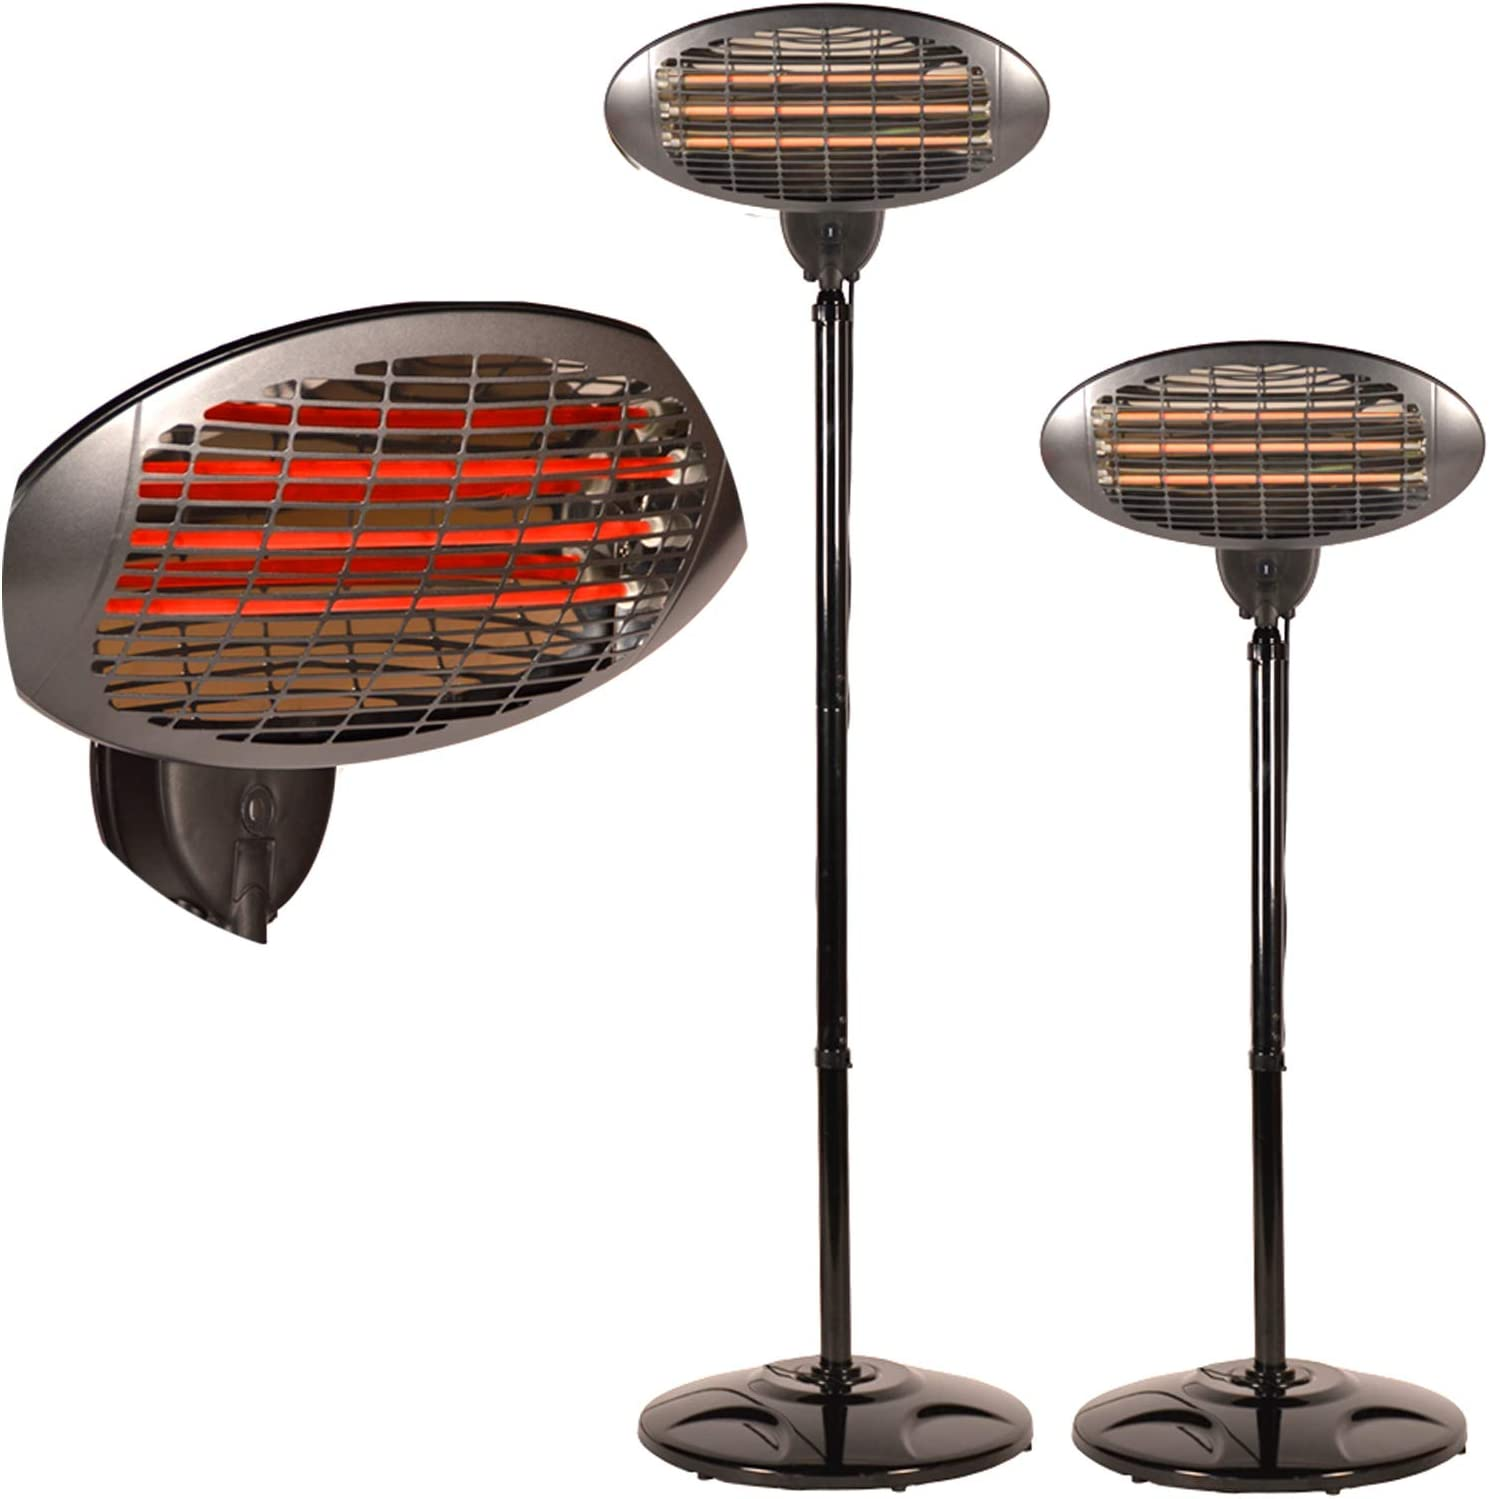 DRULINE Infrared Heater Patio Heater Remote Control Model 2 with Pull Switch